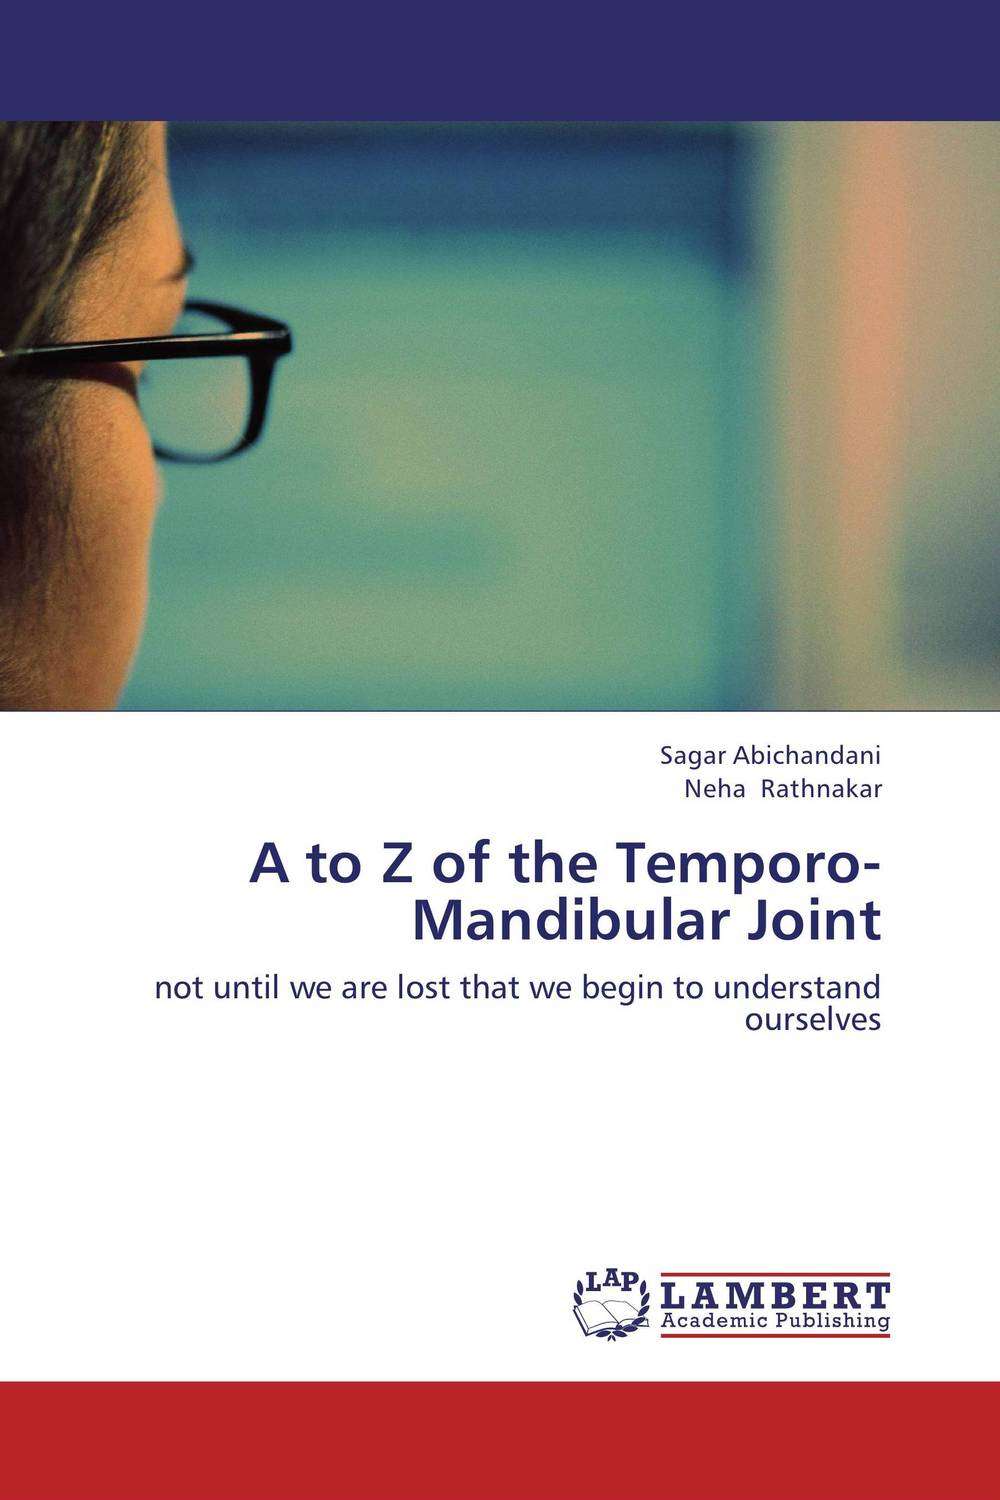 A to Z of the Temporo-Mandibular Joint temporomandibular disorder